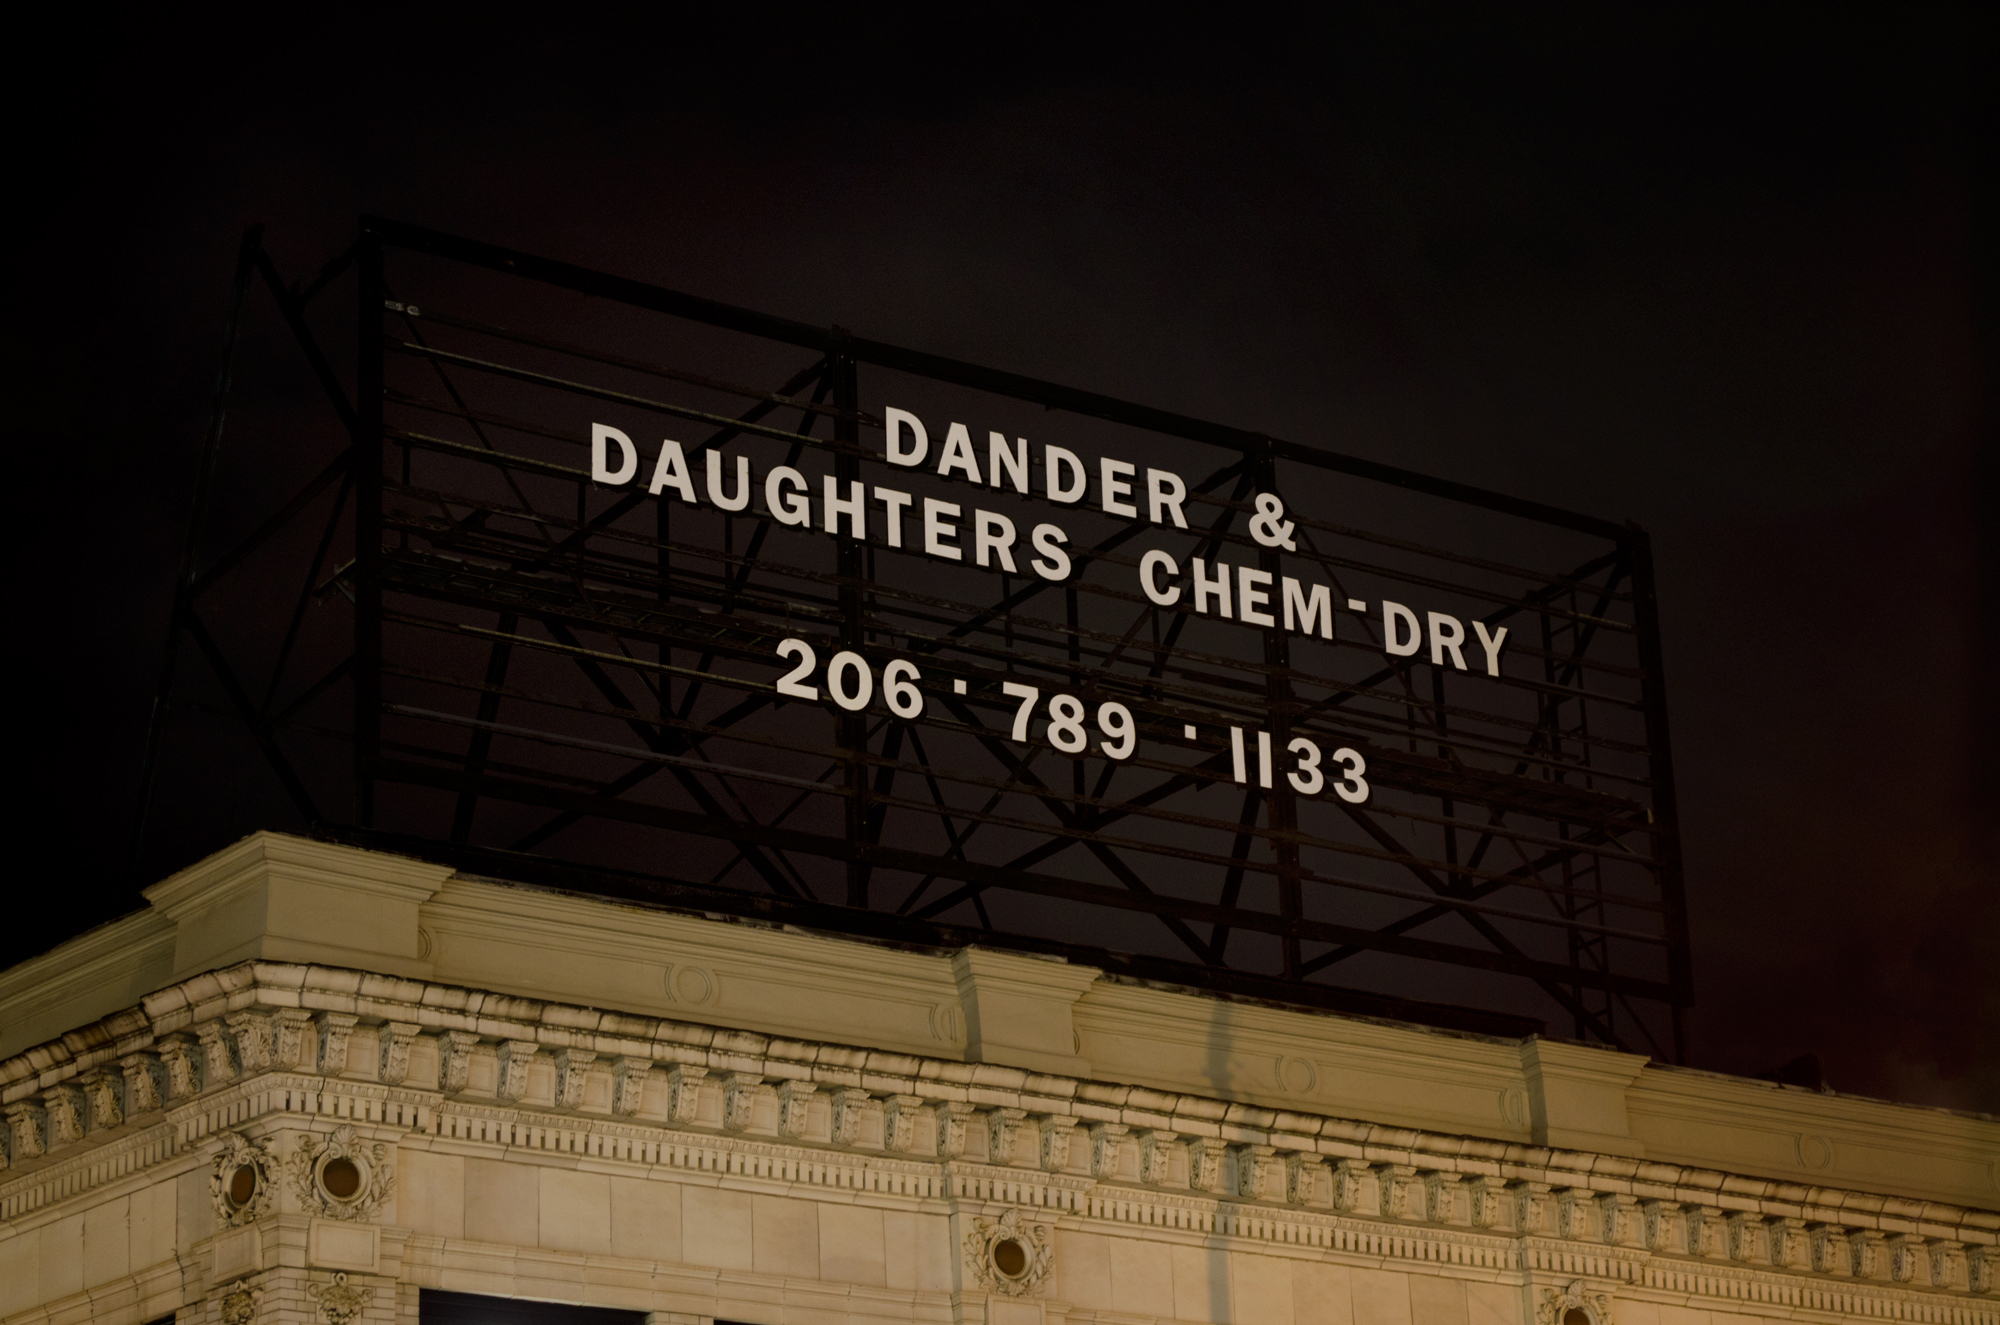 Dander & Daughters Chem-Dry